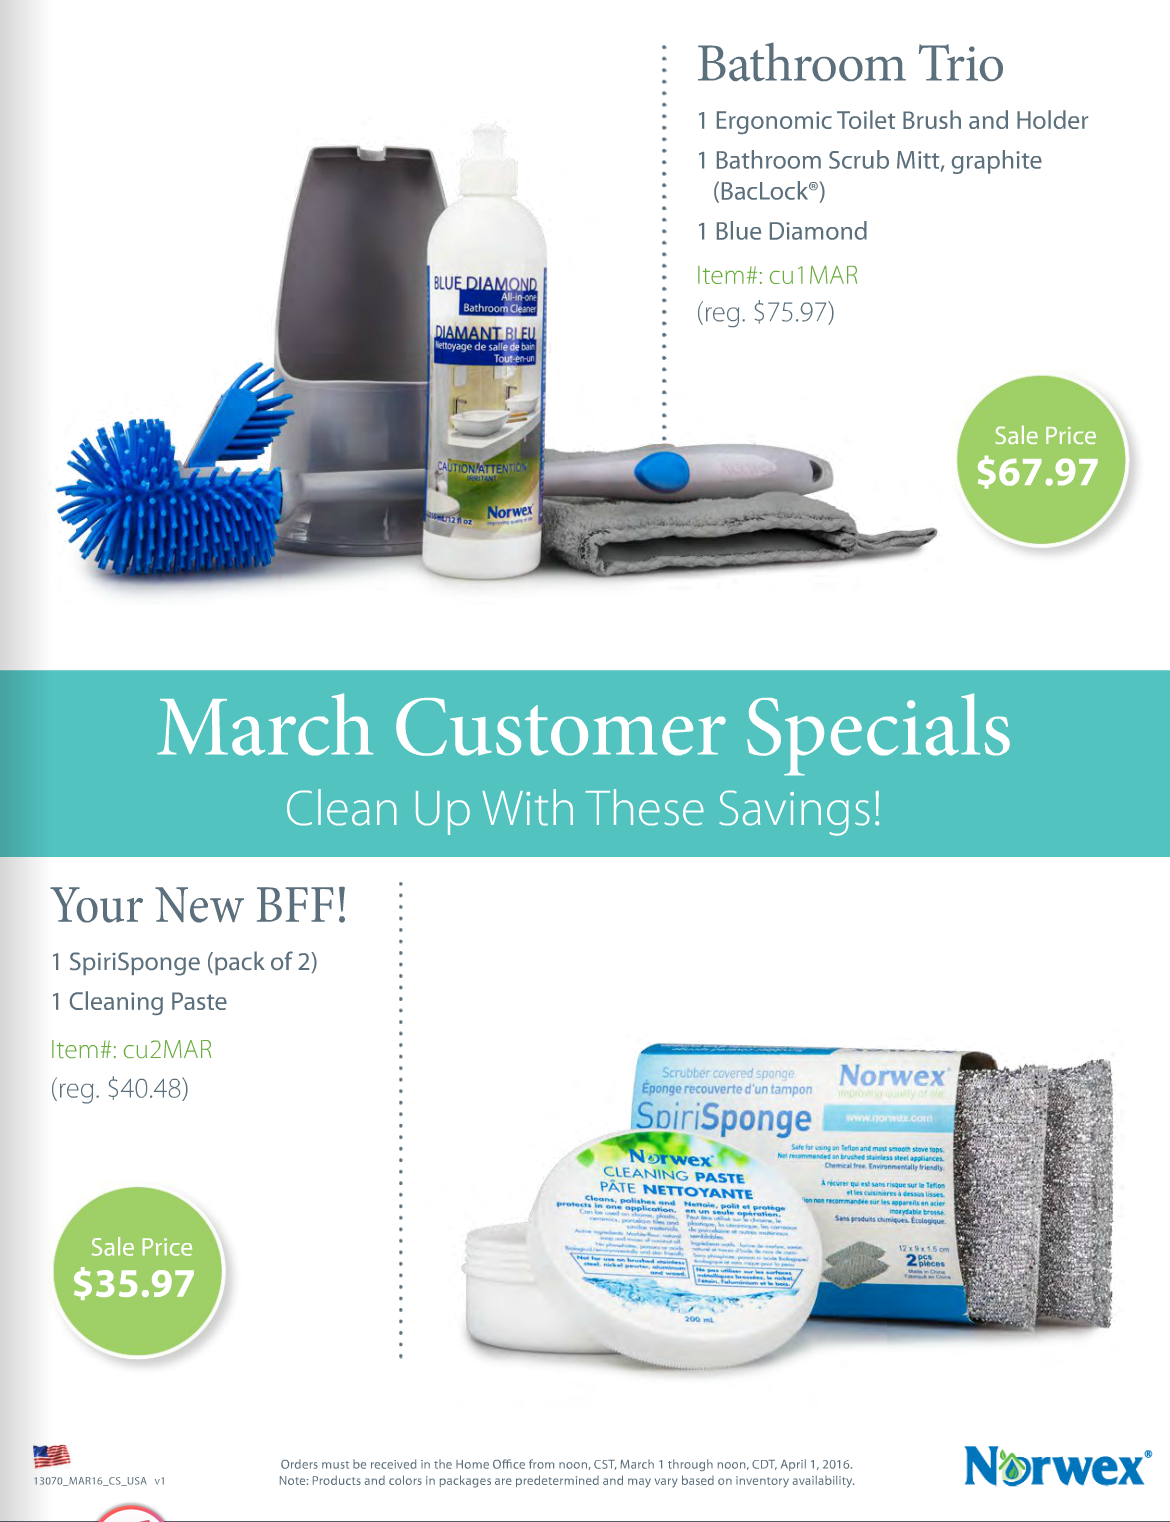 Norwex customer shopping specials March